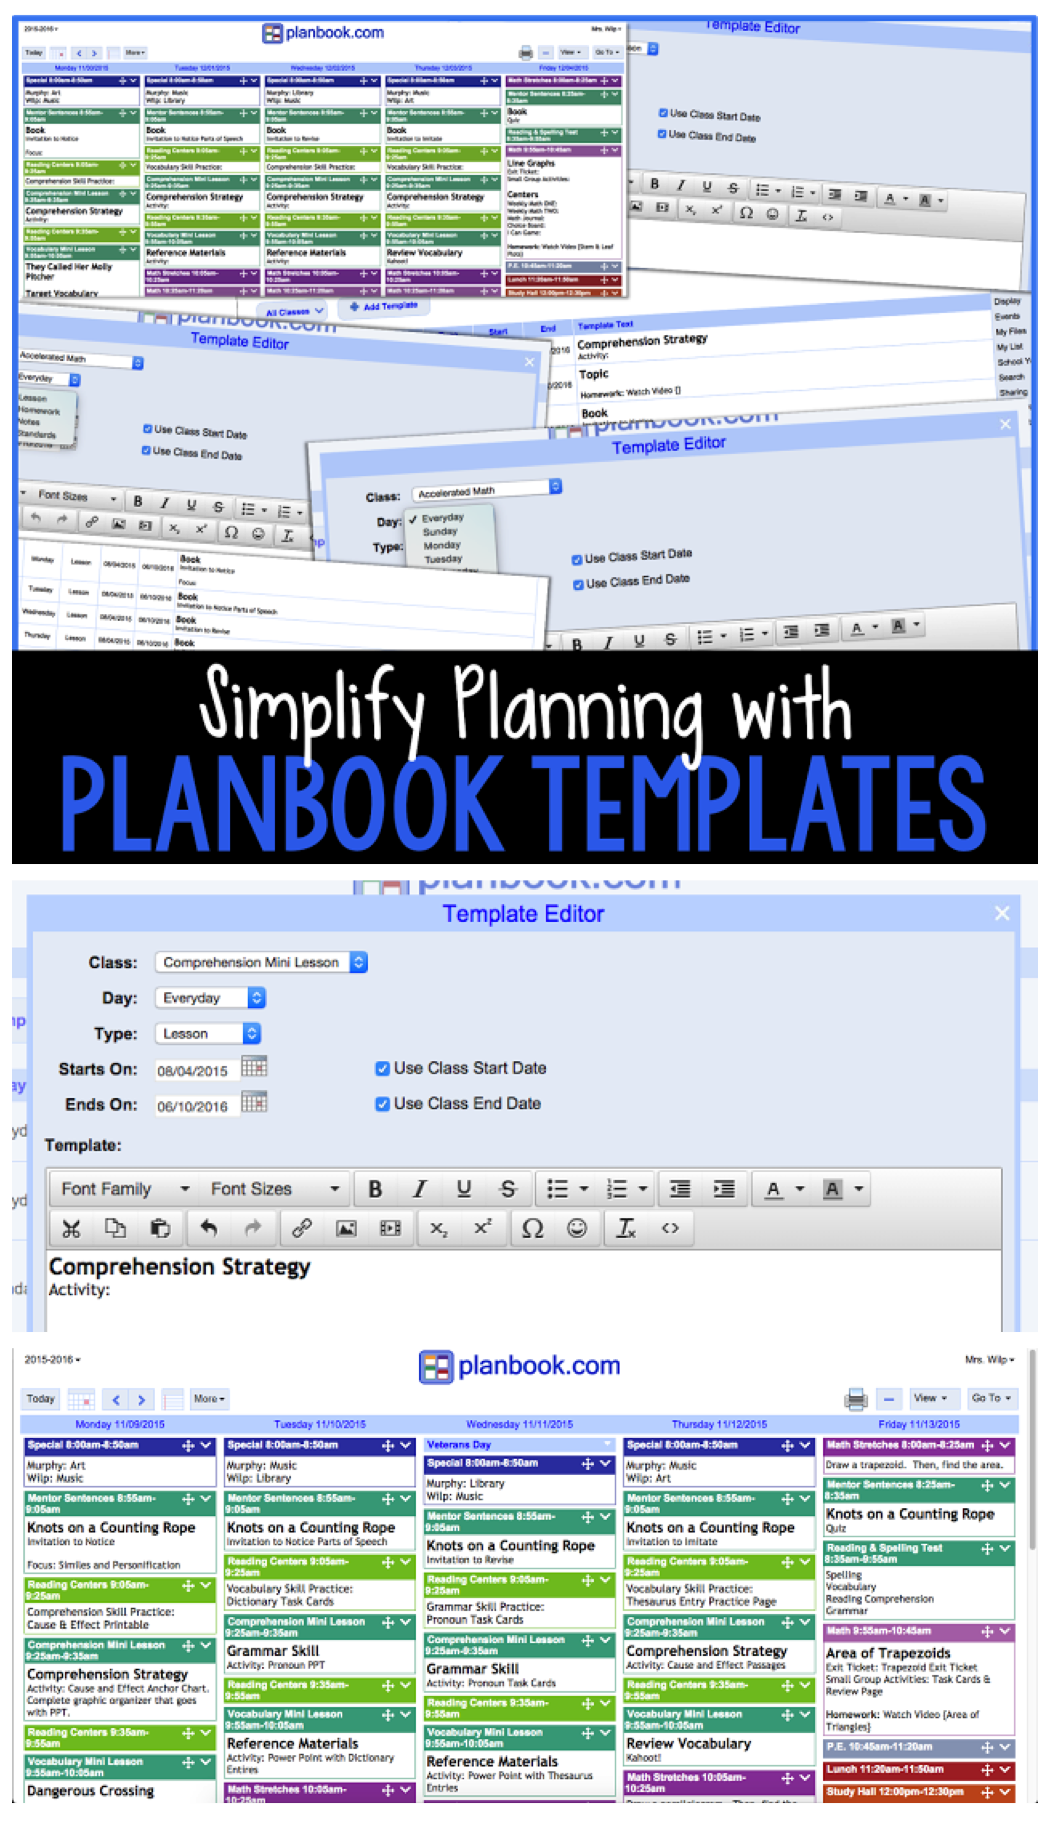 Planbook Com Templates For Faster Easier Lesson Planning The Primary Gal How To Plan Lessons Template Digital Lesson Plans